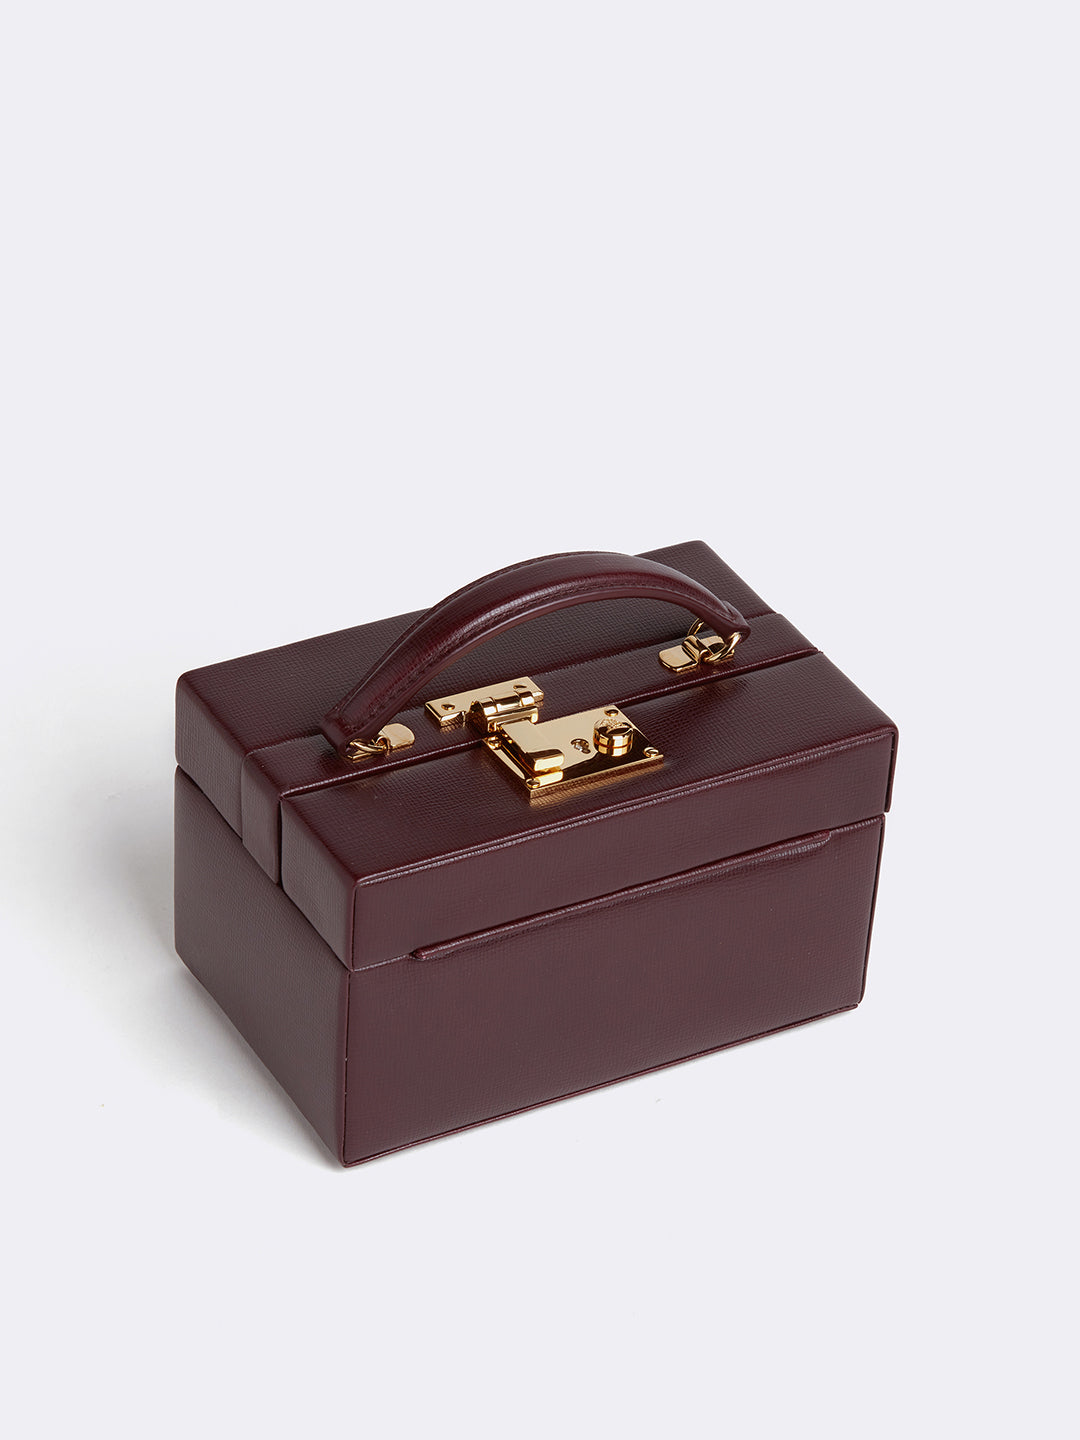 Limited Edition 1845 Leather Mini Trunk